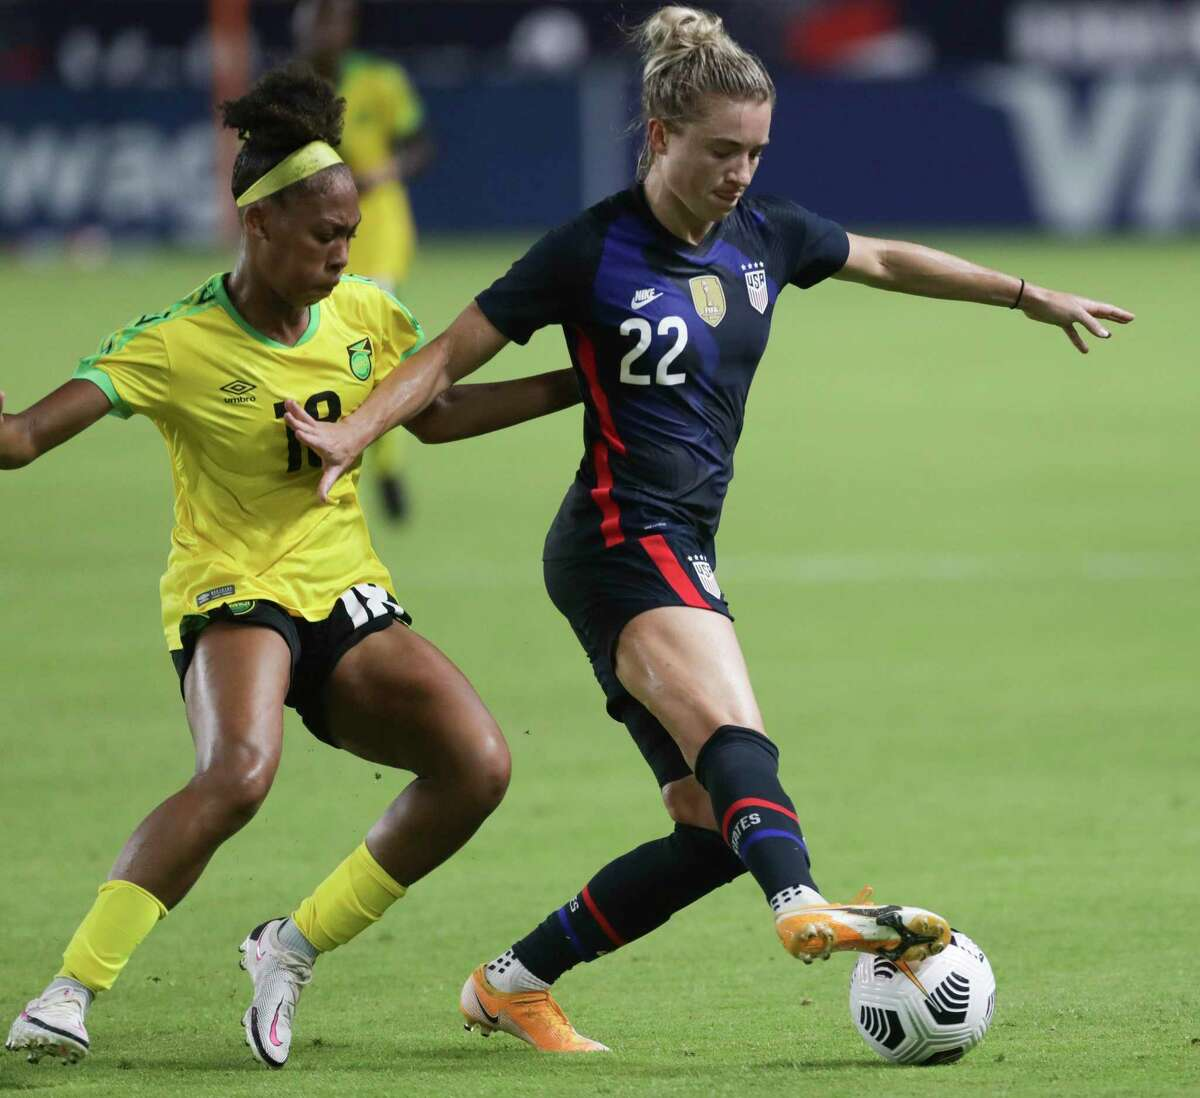 U.S. Women's National Team midfielder Kristie Mewis (22) keeps control of the ball while Jamaica Women's National Football Team midfielder Tierney Wiltshire (18) is defensing during the second half of 2021 Summer Series match Sunday, June 13, 2021, at BBVA Stadium in Houston. The U.S. Women's National Team defeated the against the Jamaica Women's National Football Team 4-0.